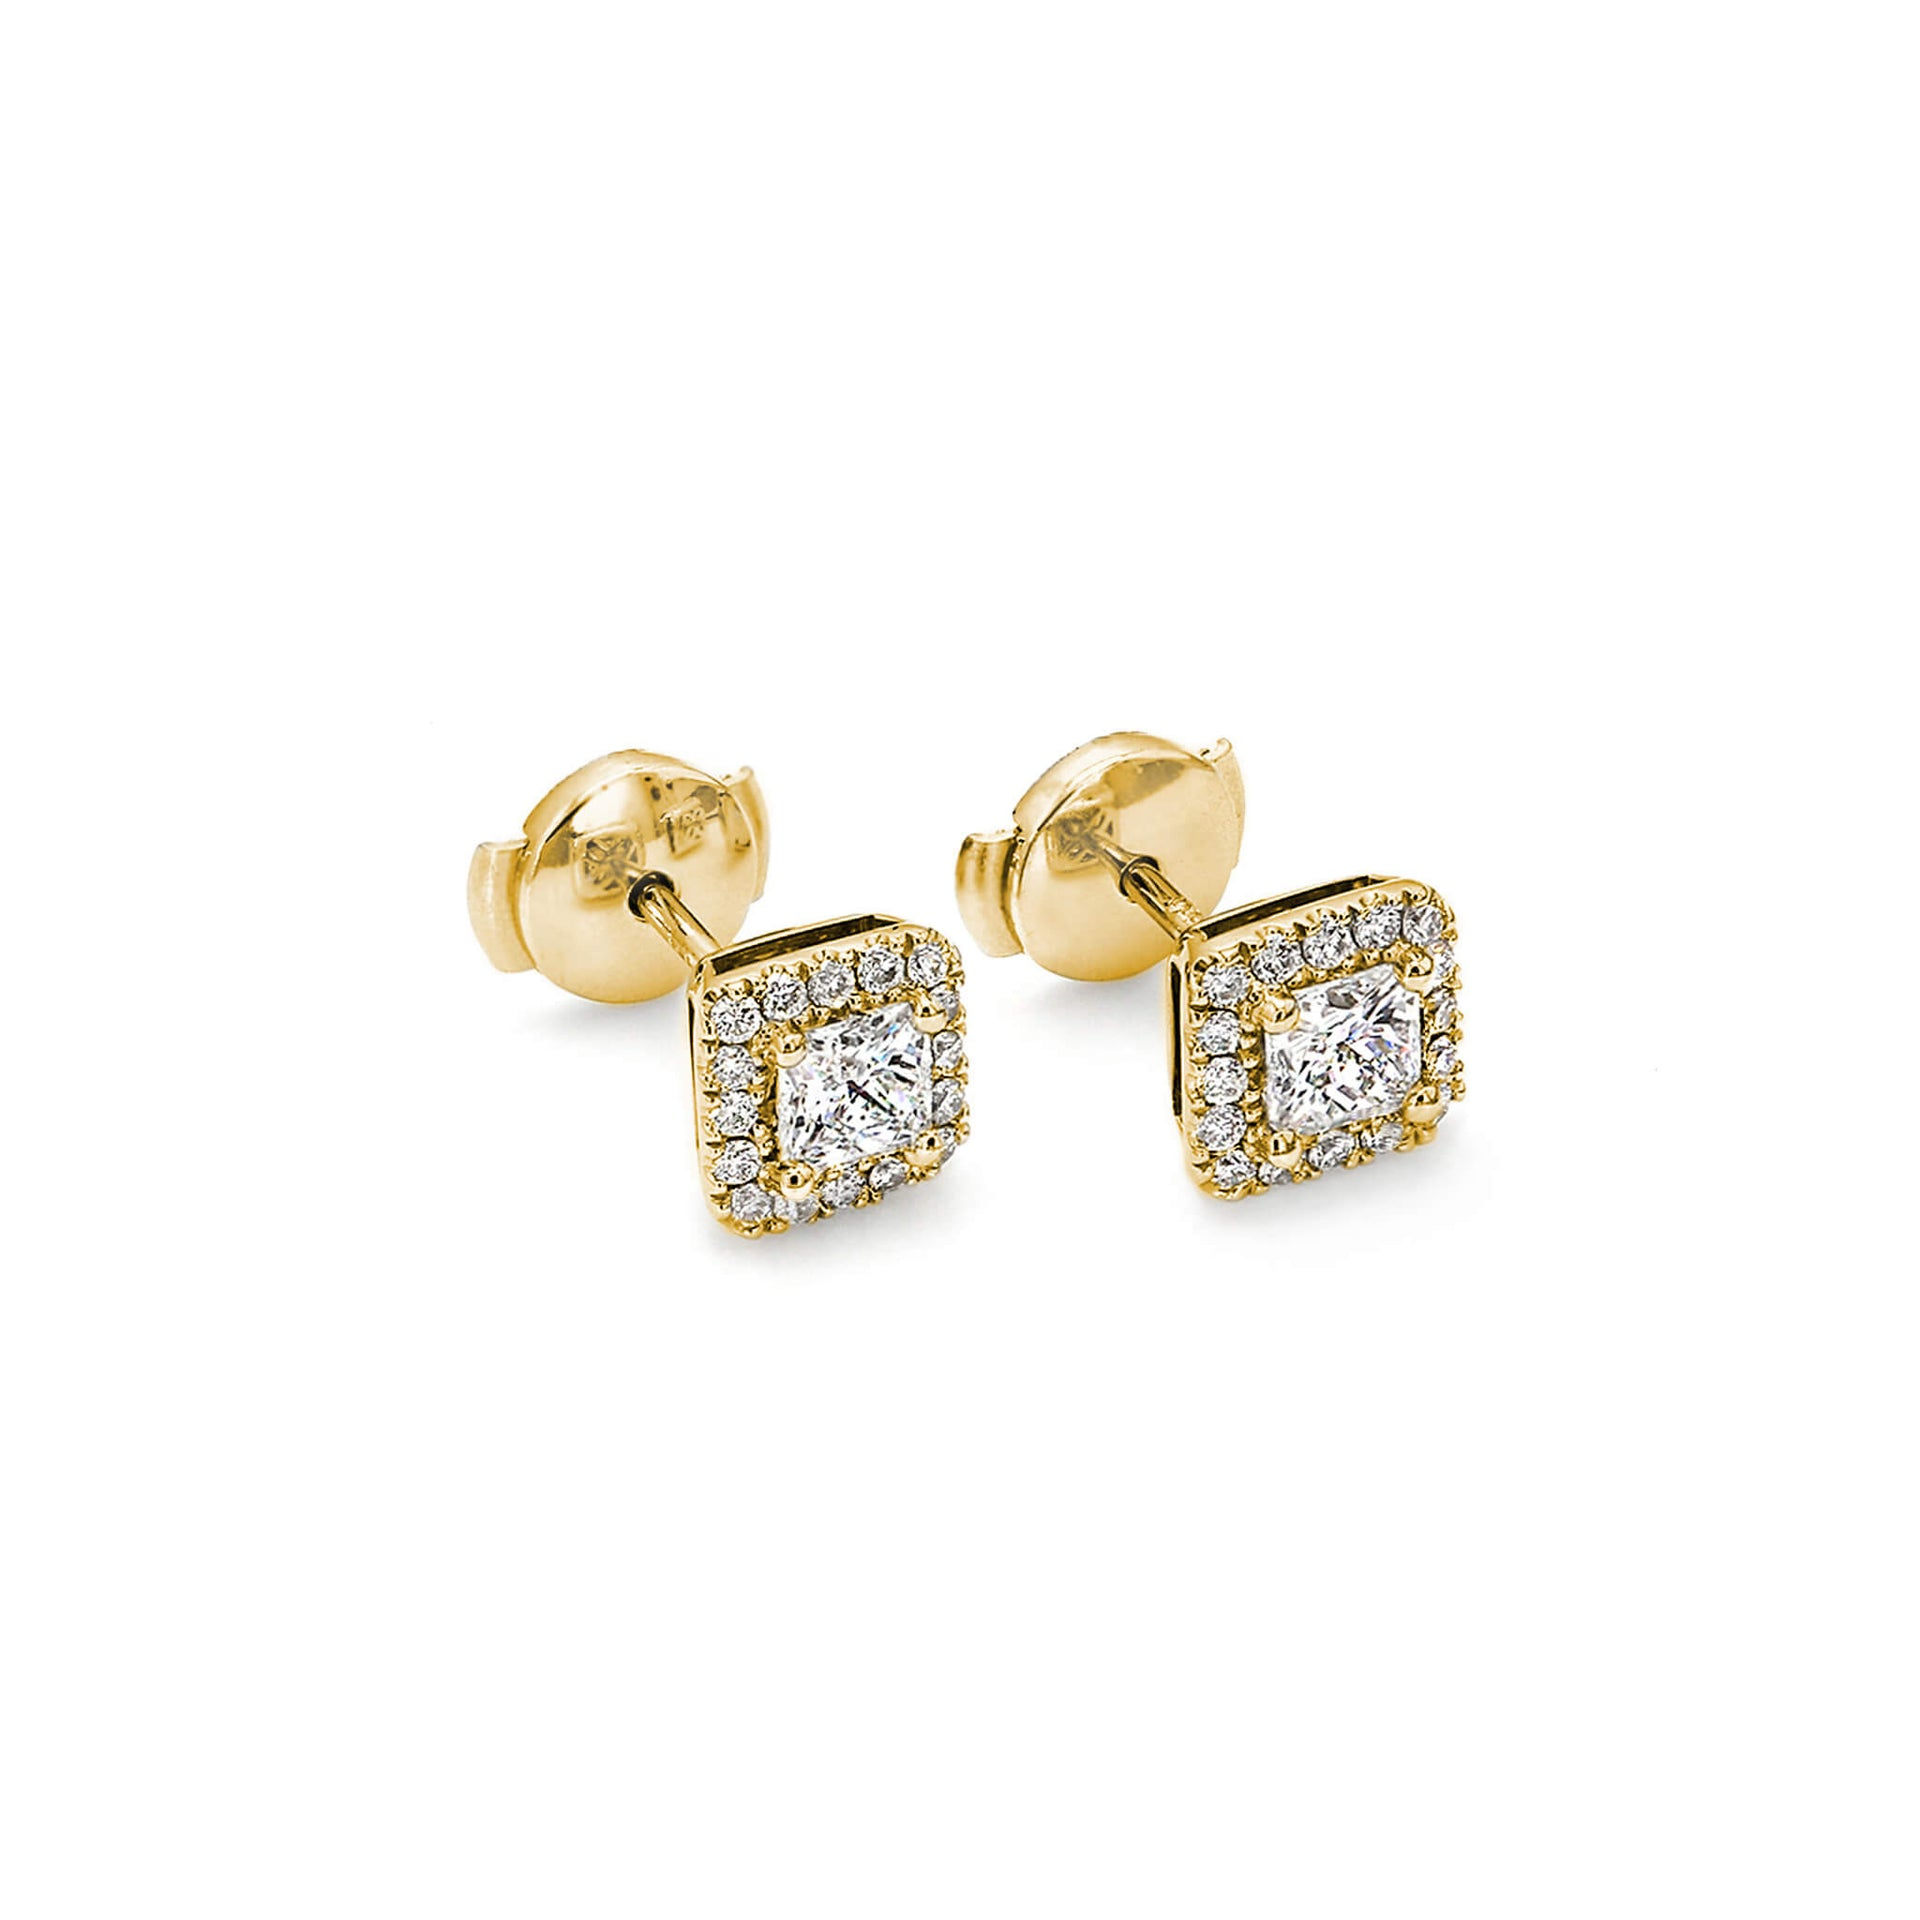 My Girl Halo Design Diamond Stud Earrings in 18K Yellow Gold 3D View